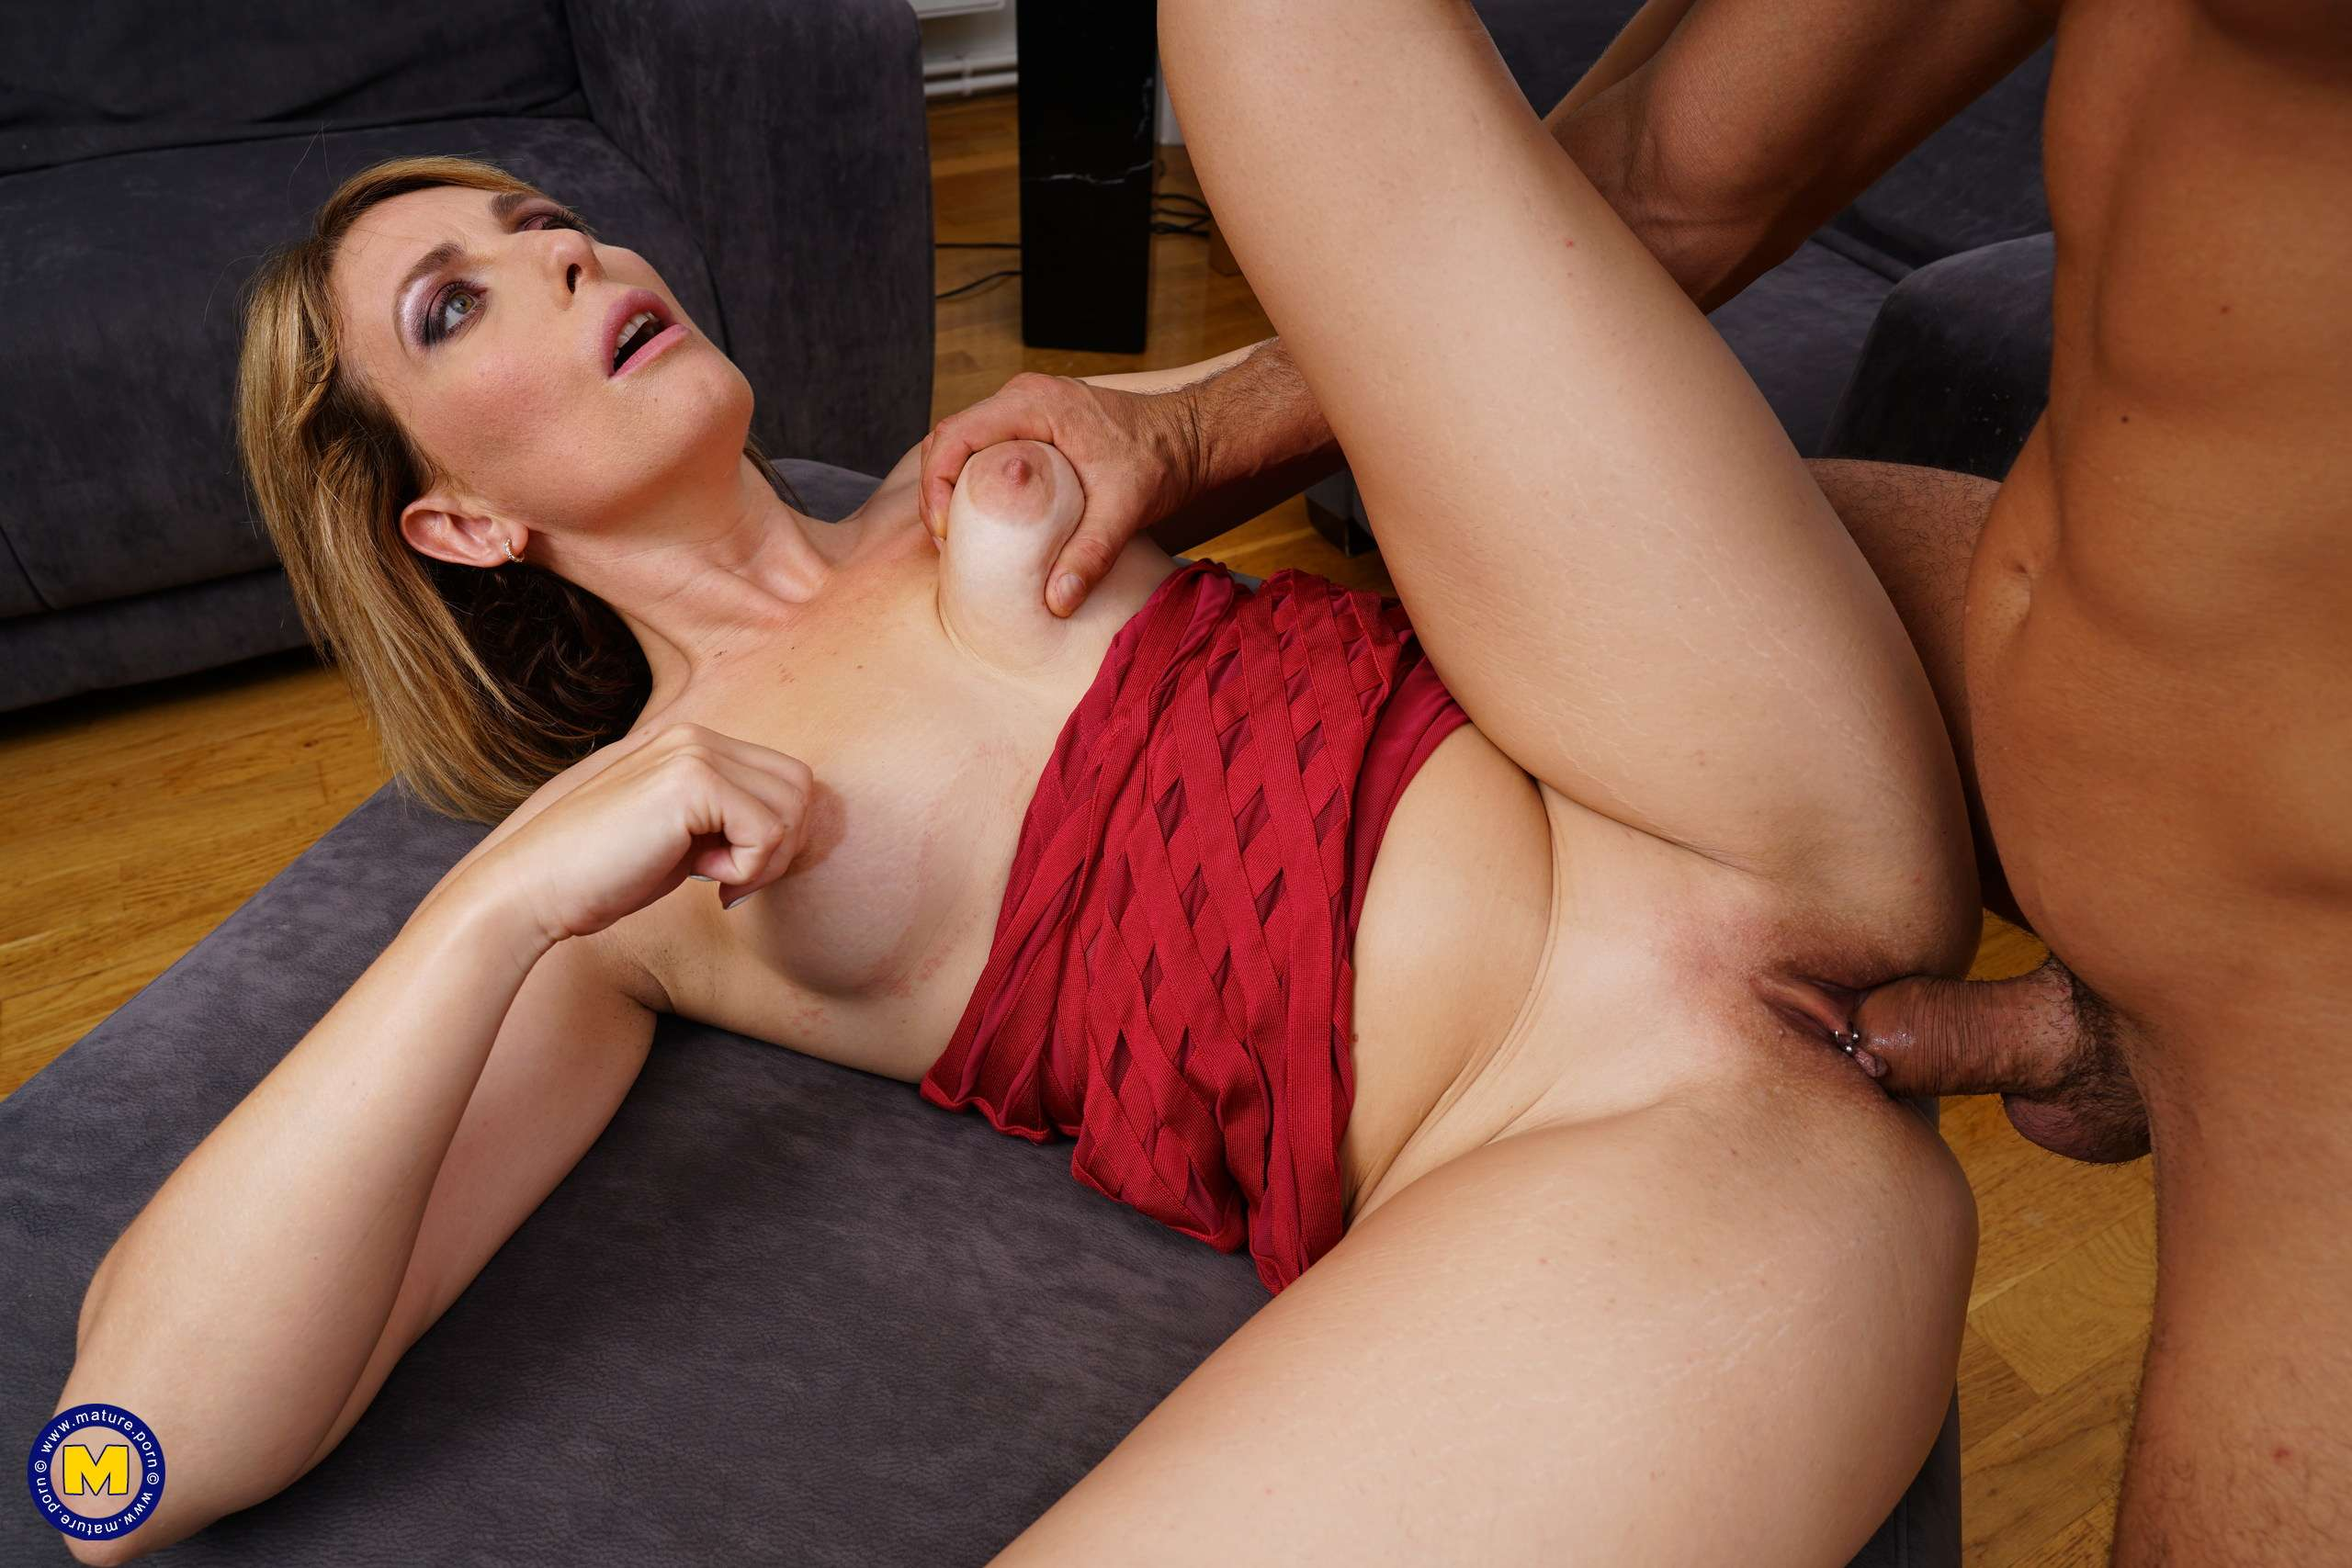 This hot MILF is taking it up the ass